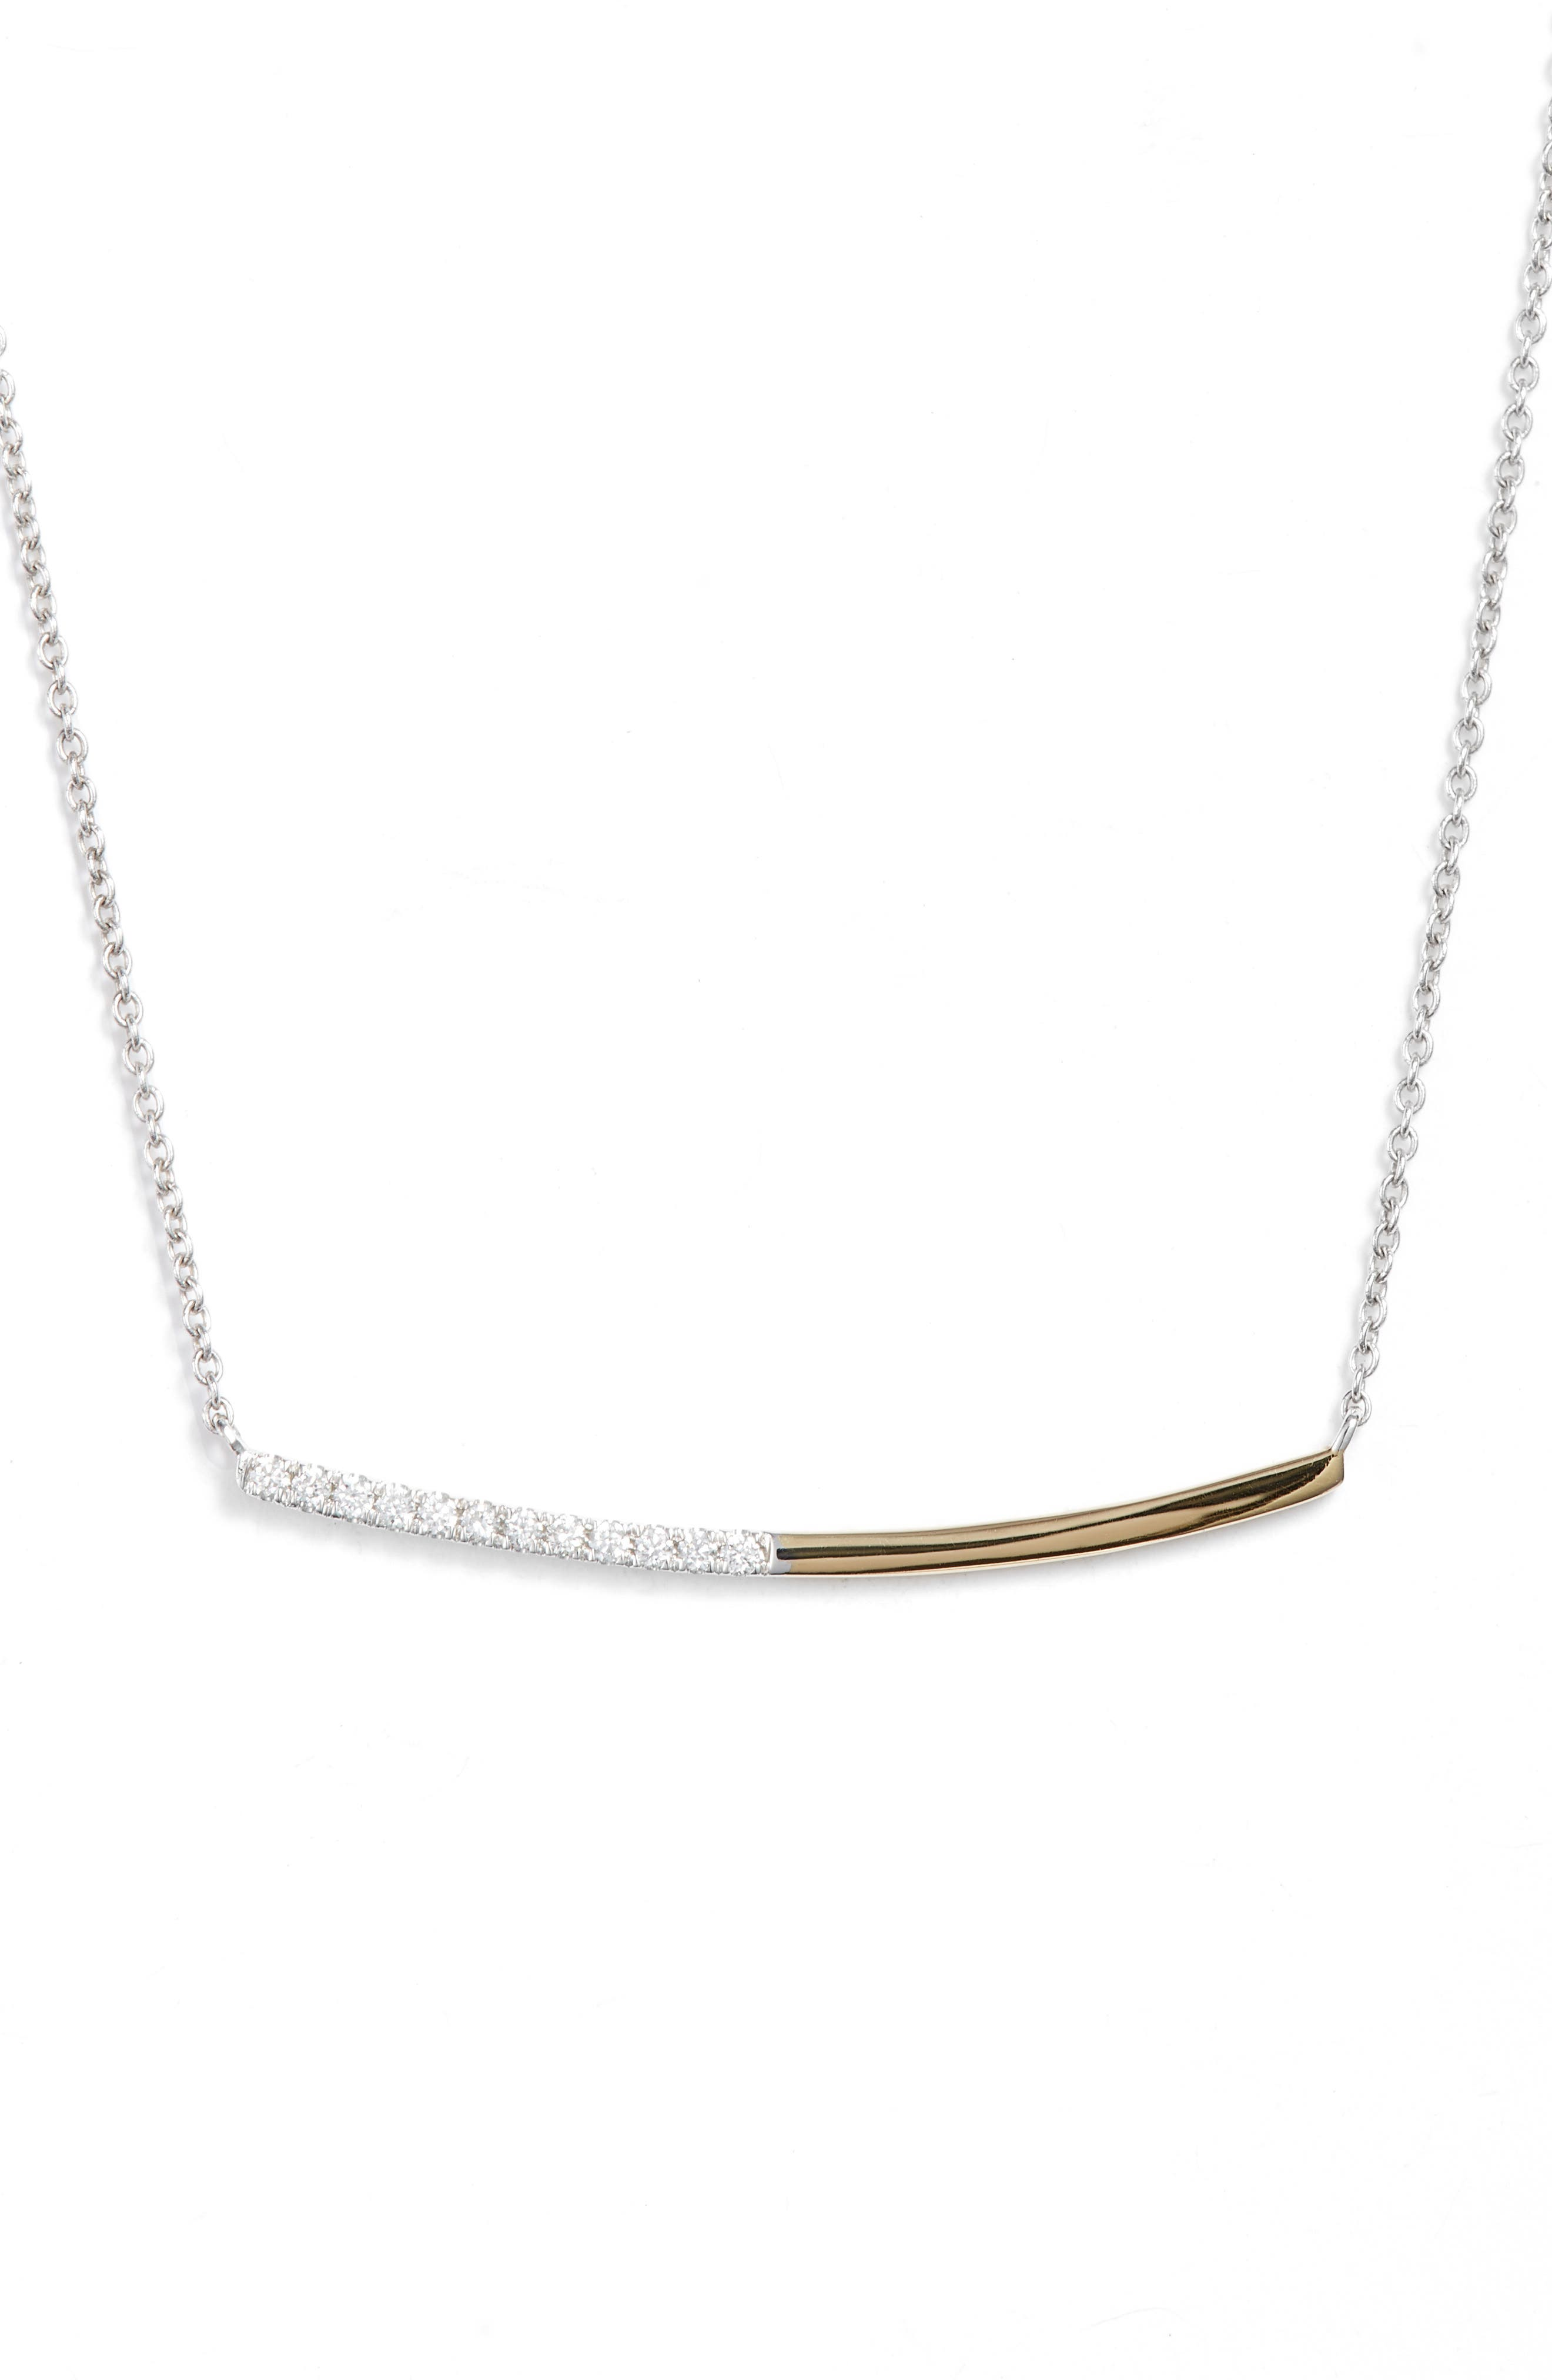 Two-Tone Curved Diamond Bar Neck,                             Main thumbnail 1, color,                             YELLOW GOLD/ WHITE GOLD